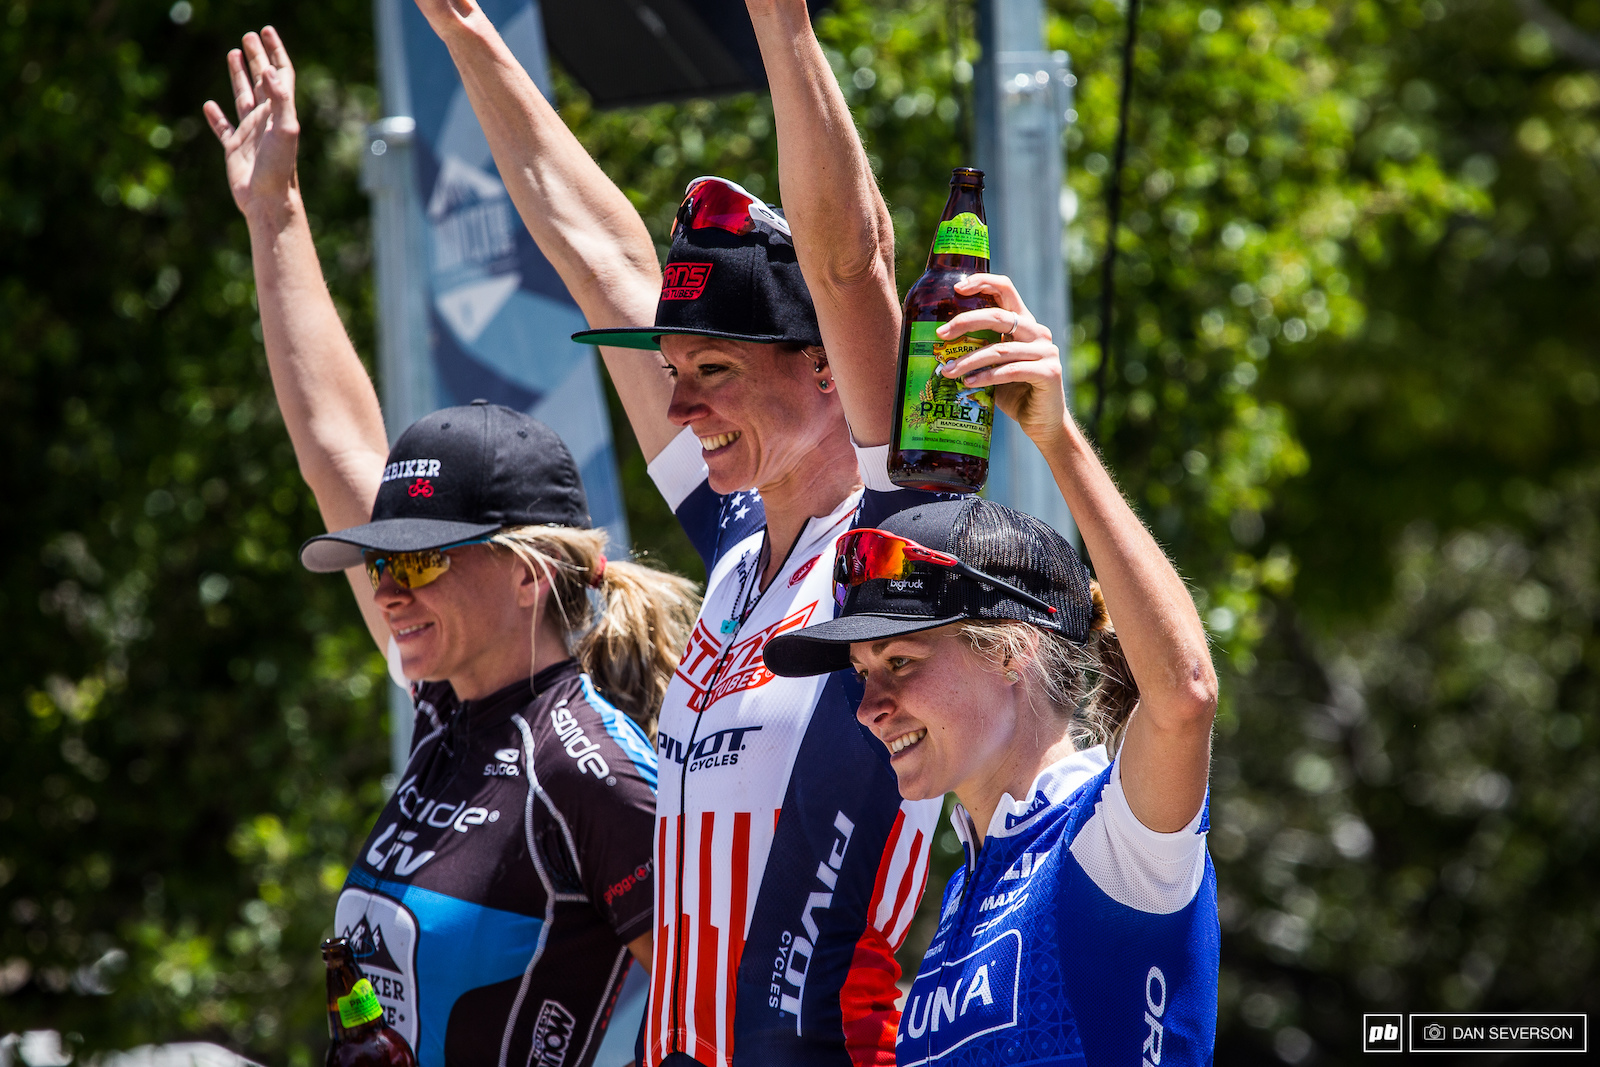 Rose Grant Amy Beisel and Maghalie Rochette celebrate as the top three winners of the race series.